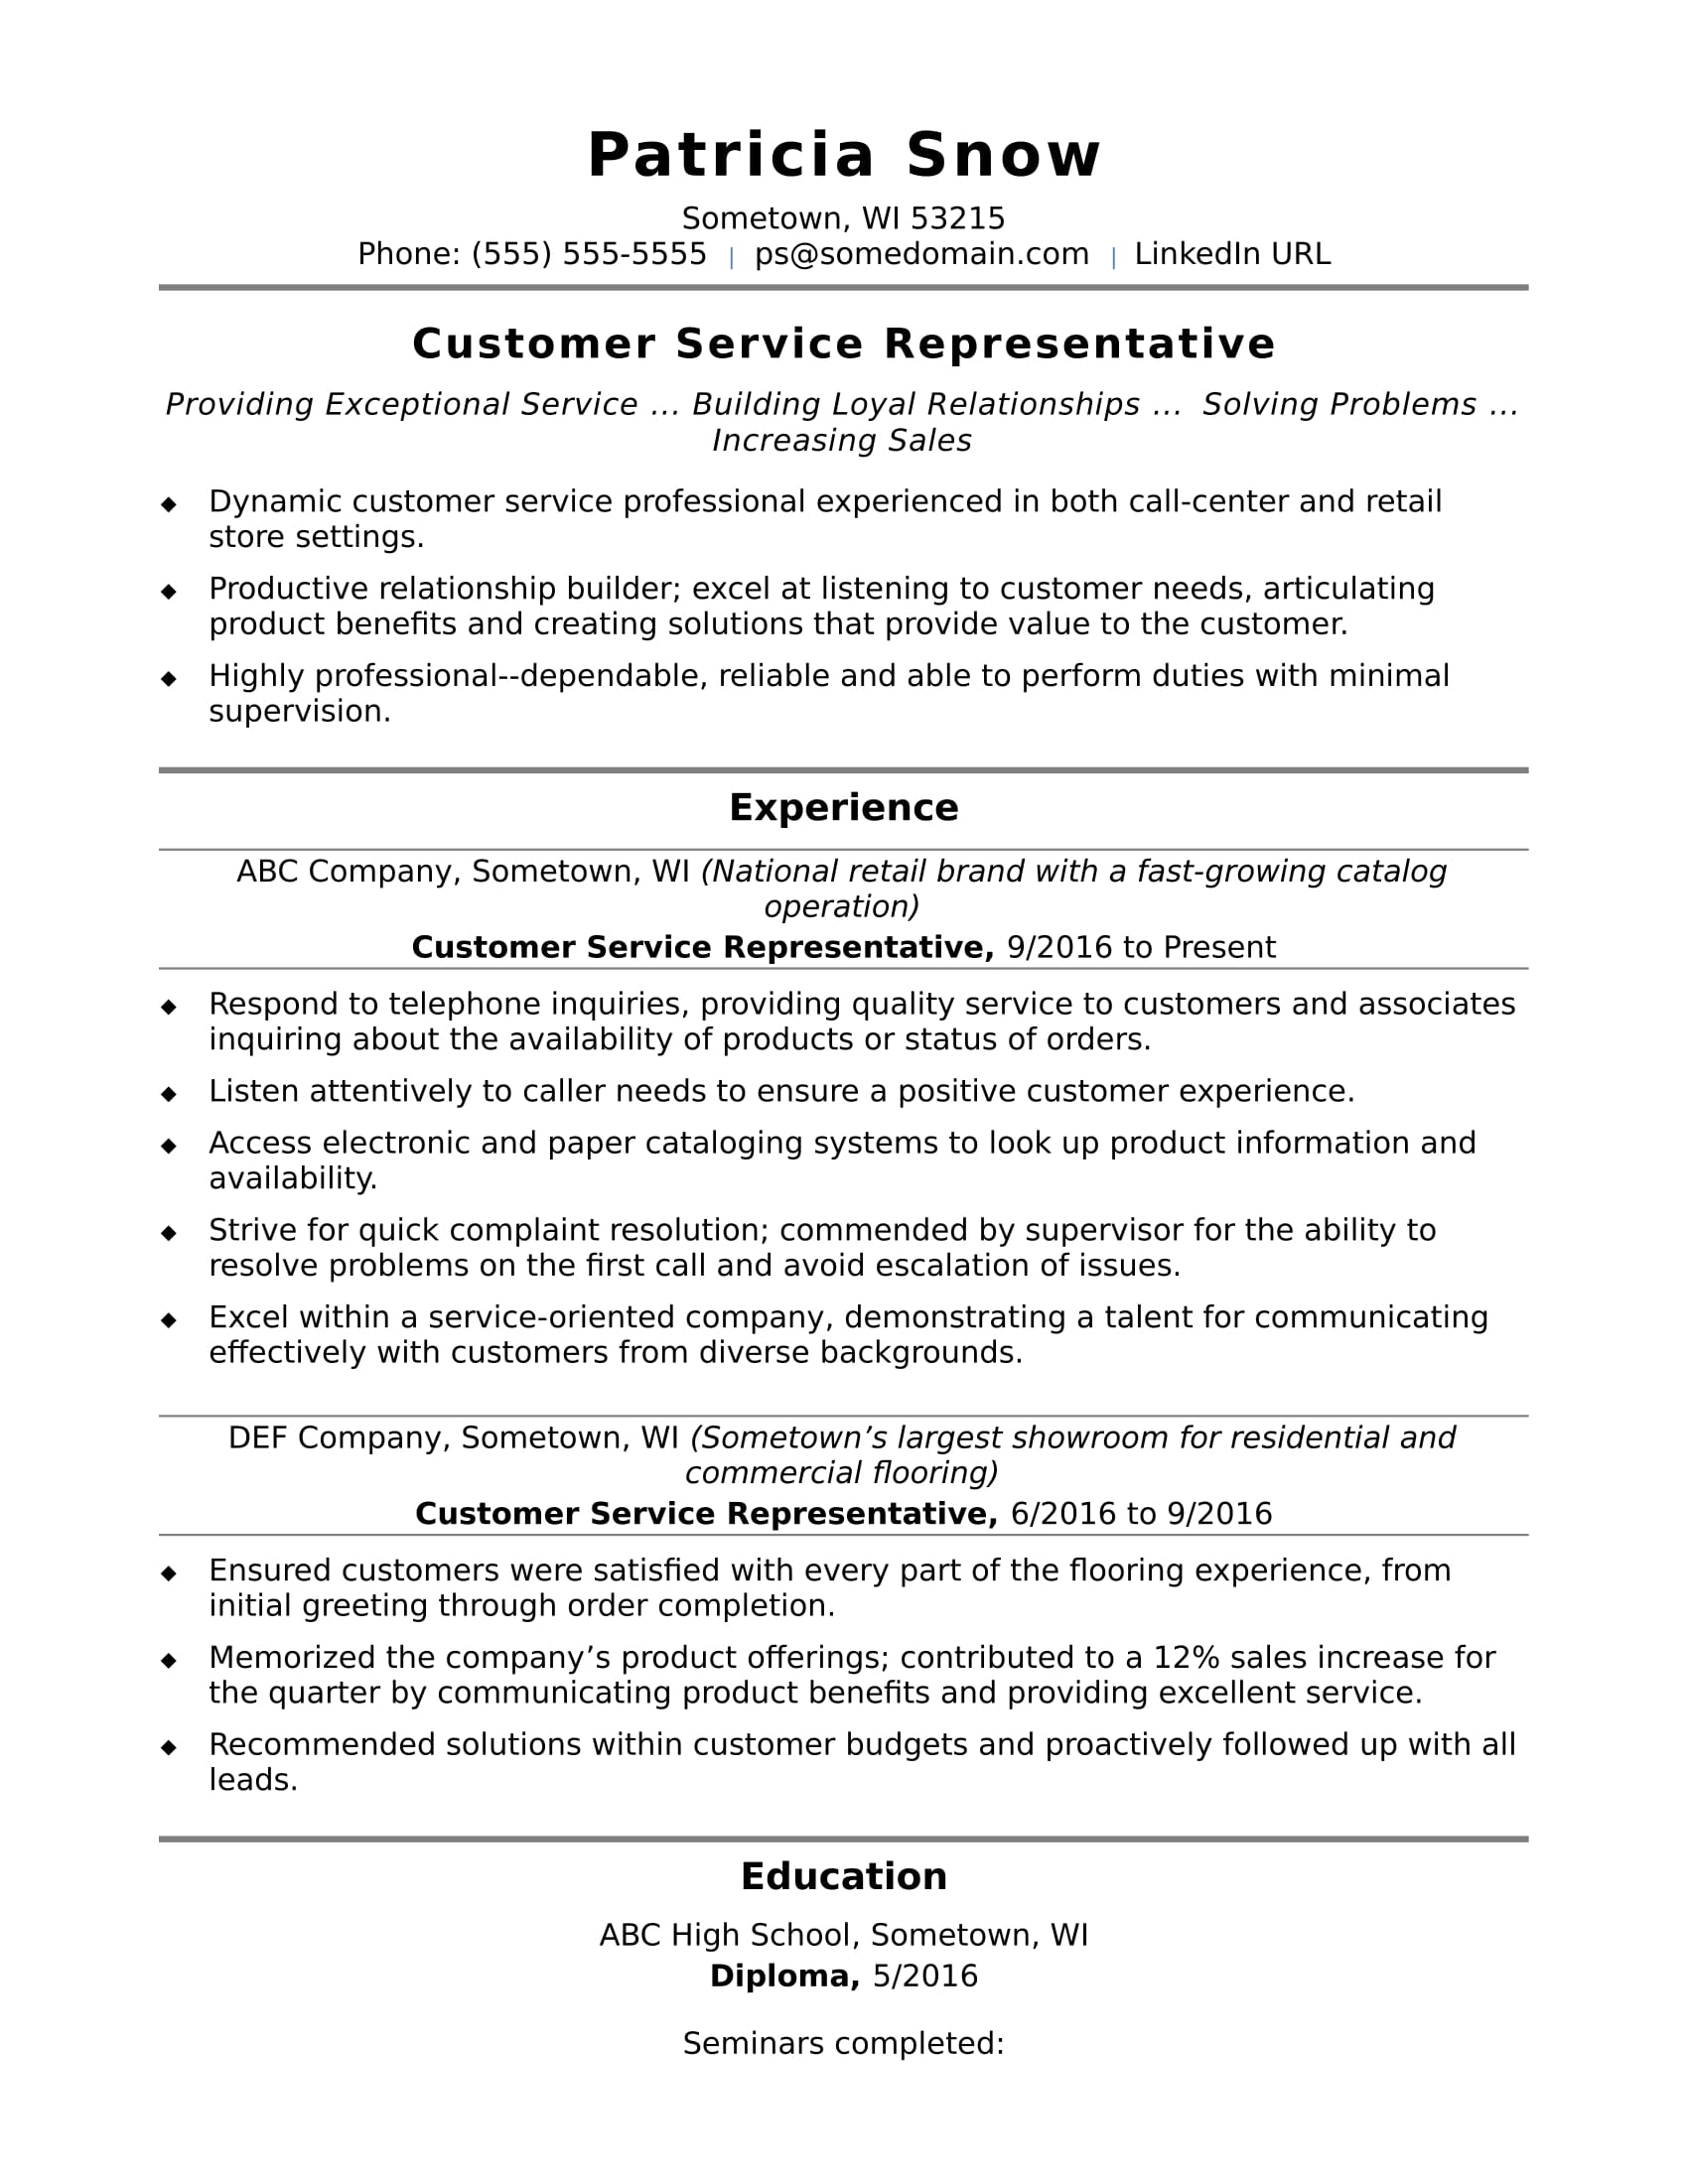 Resume Template For Customer Service Representative Customer Service Representative Resume Sample Monster